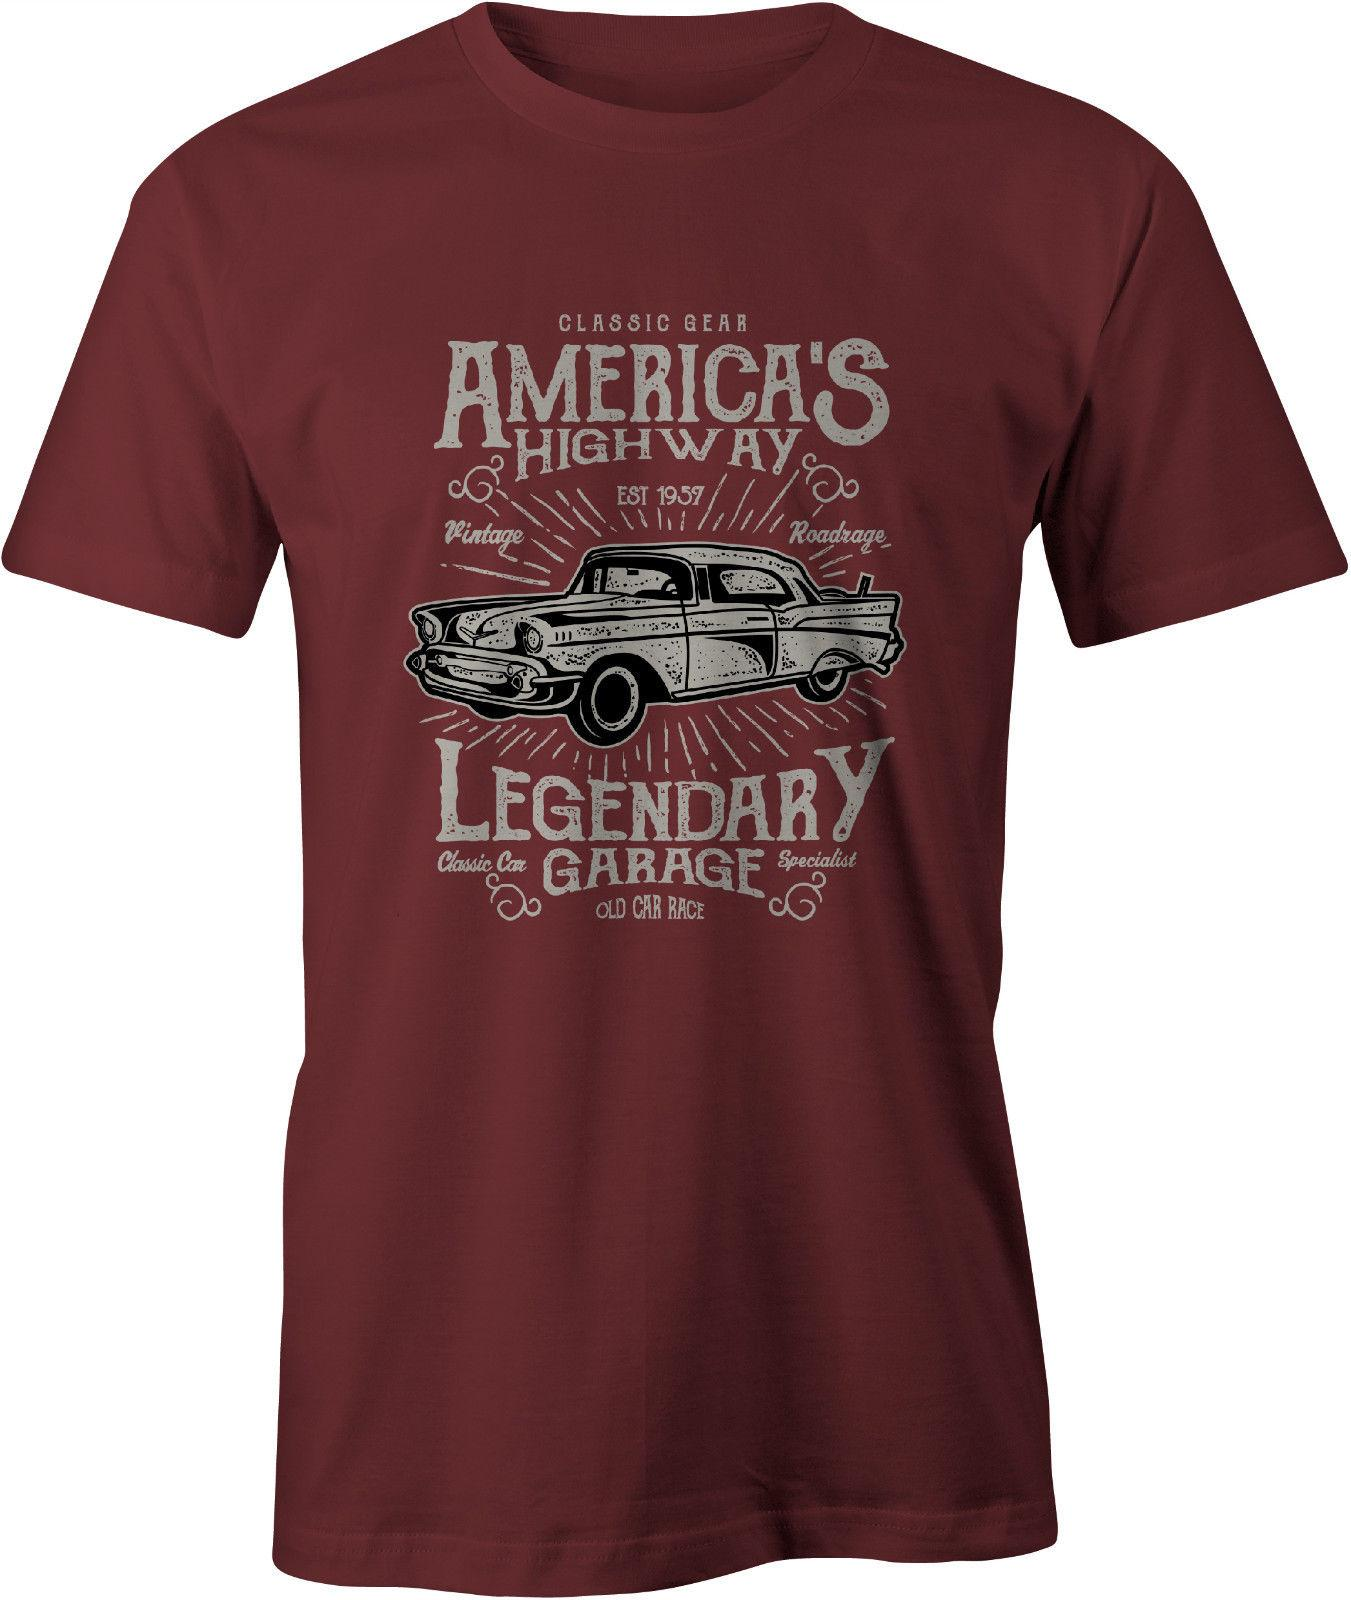 Chevy T Shirts >> America S Highway 57 Chevy T Shirt Classic Car Usa Funny Free Shipping Unisex Casual Tee Top